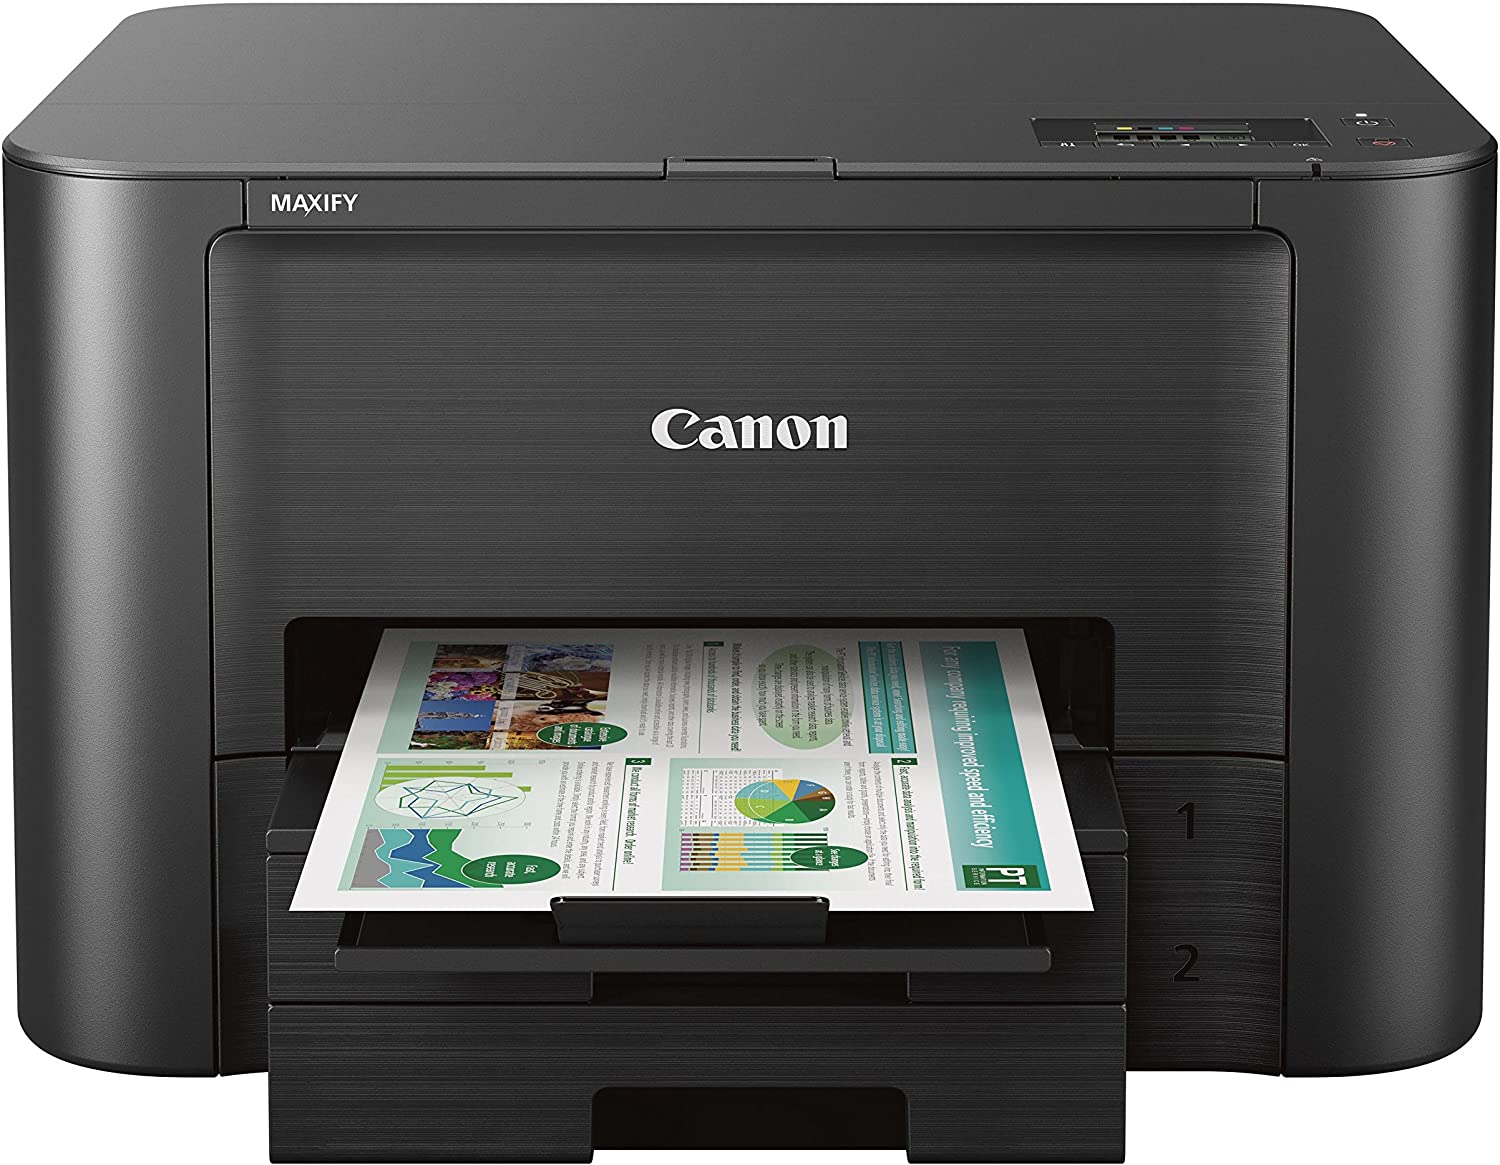 """Canon Office Products MAXIFY IB4120 Wireless Color Photo Printer, 11.5"""" x 18.1"""" x 18.3"""""""